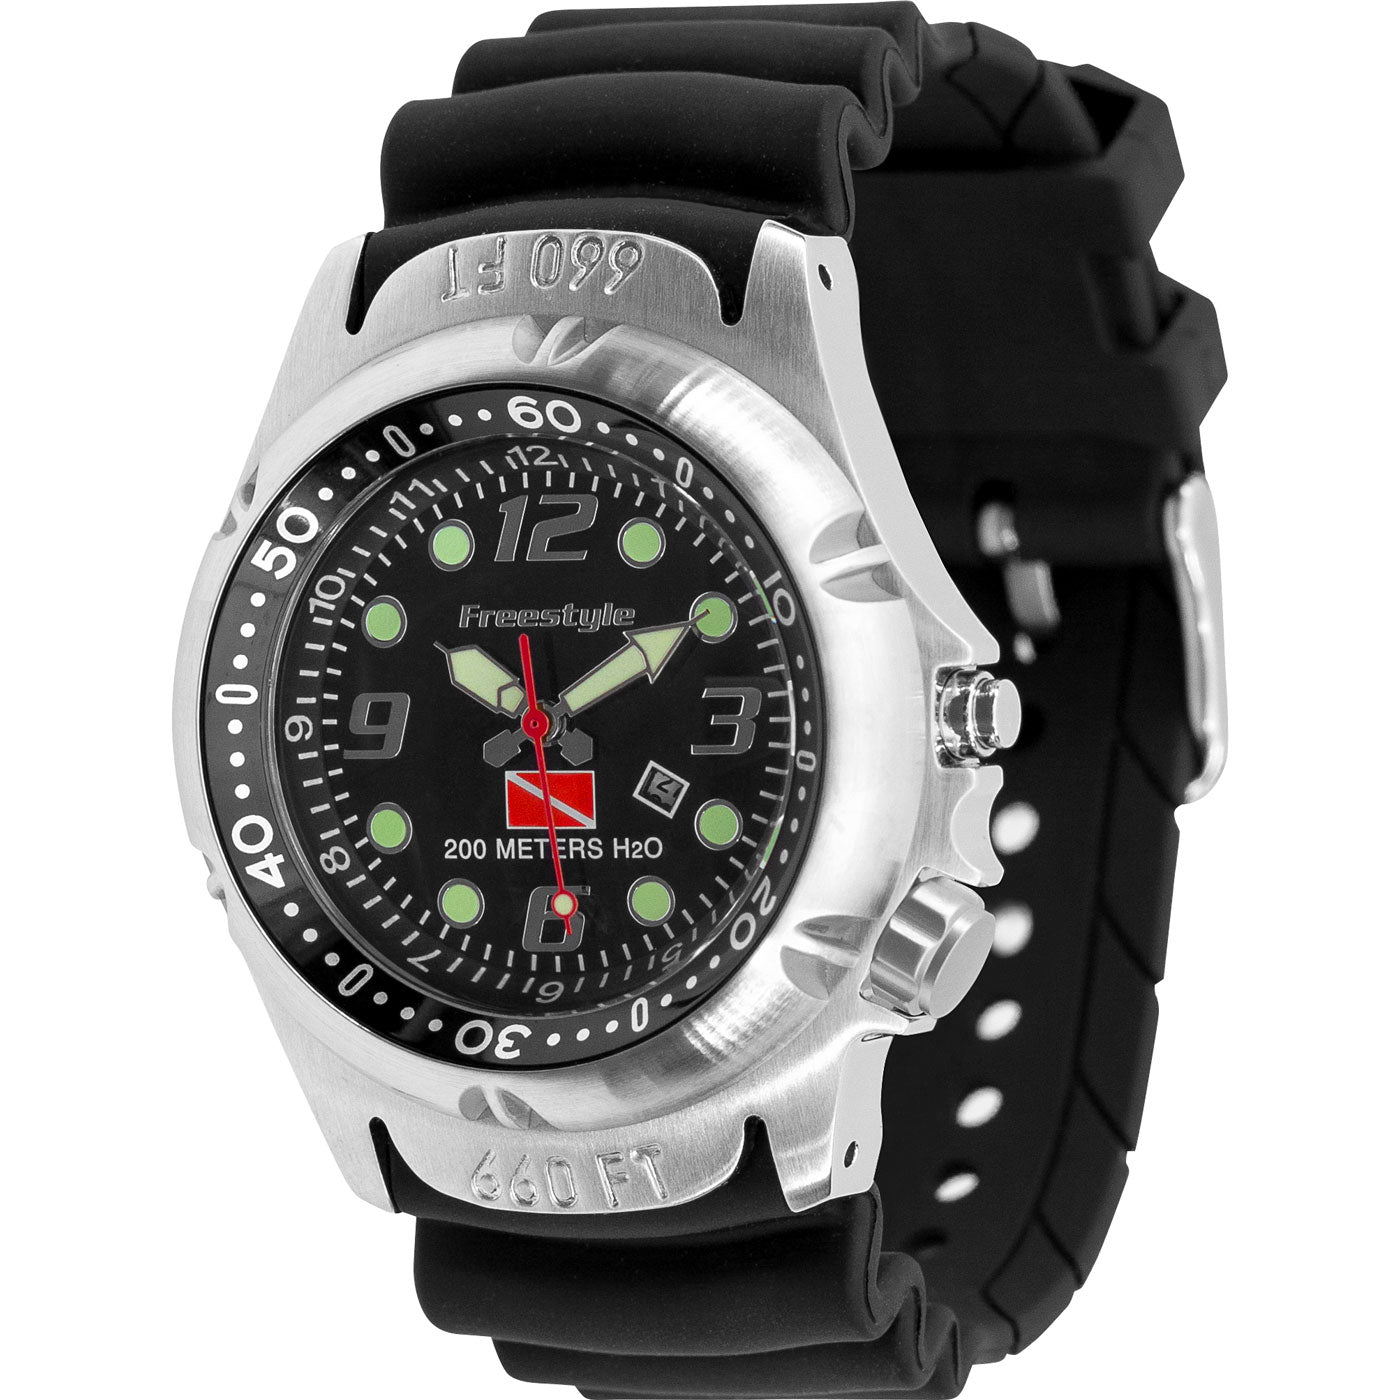 Freestyle Watches Hammerhead Black Unisex Watch Manual Guide